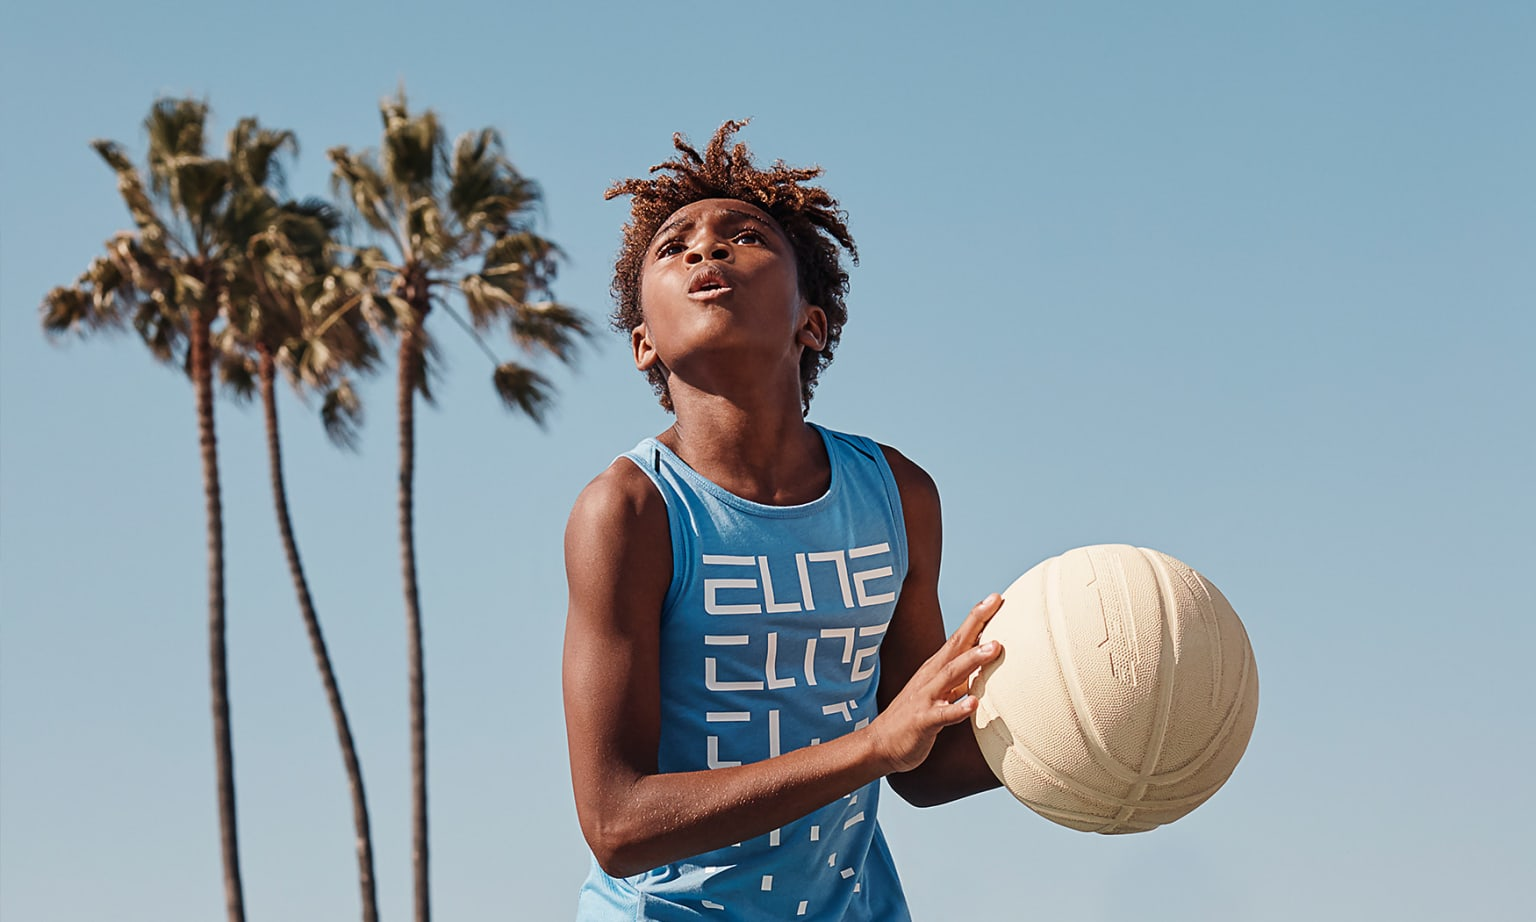 Gear Up with Nike Young Athletes